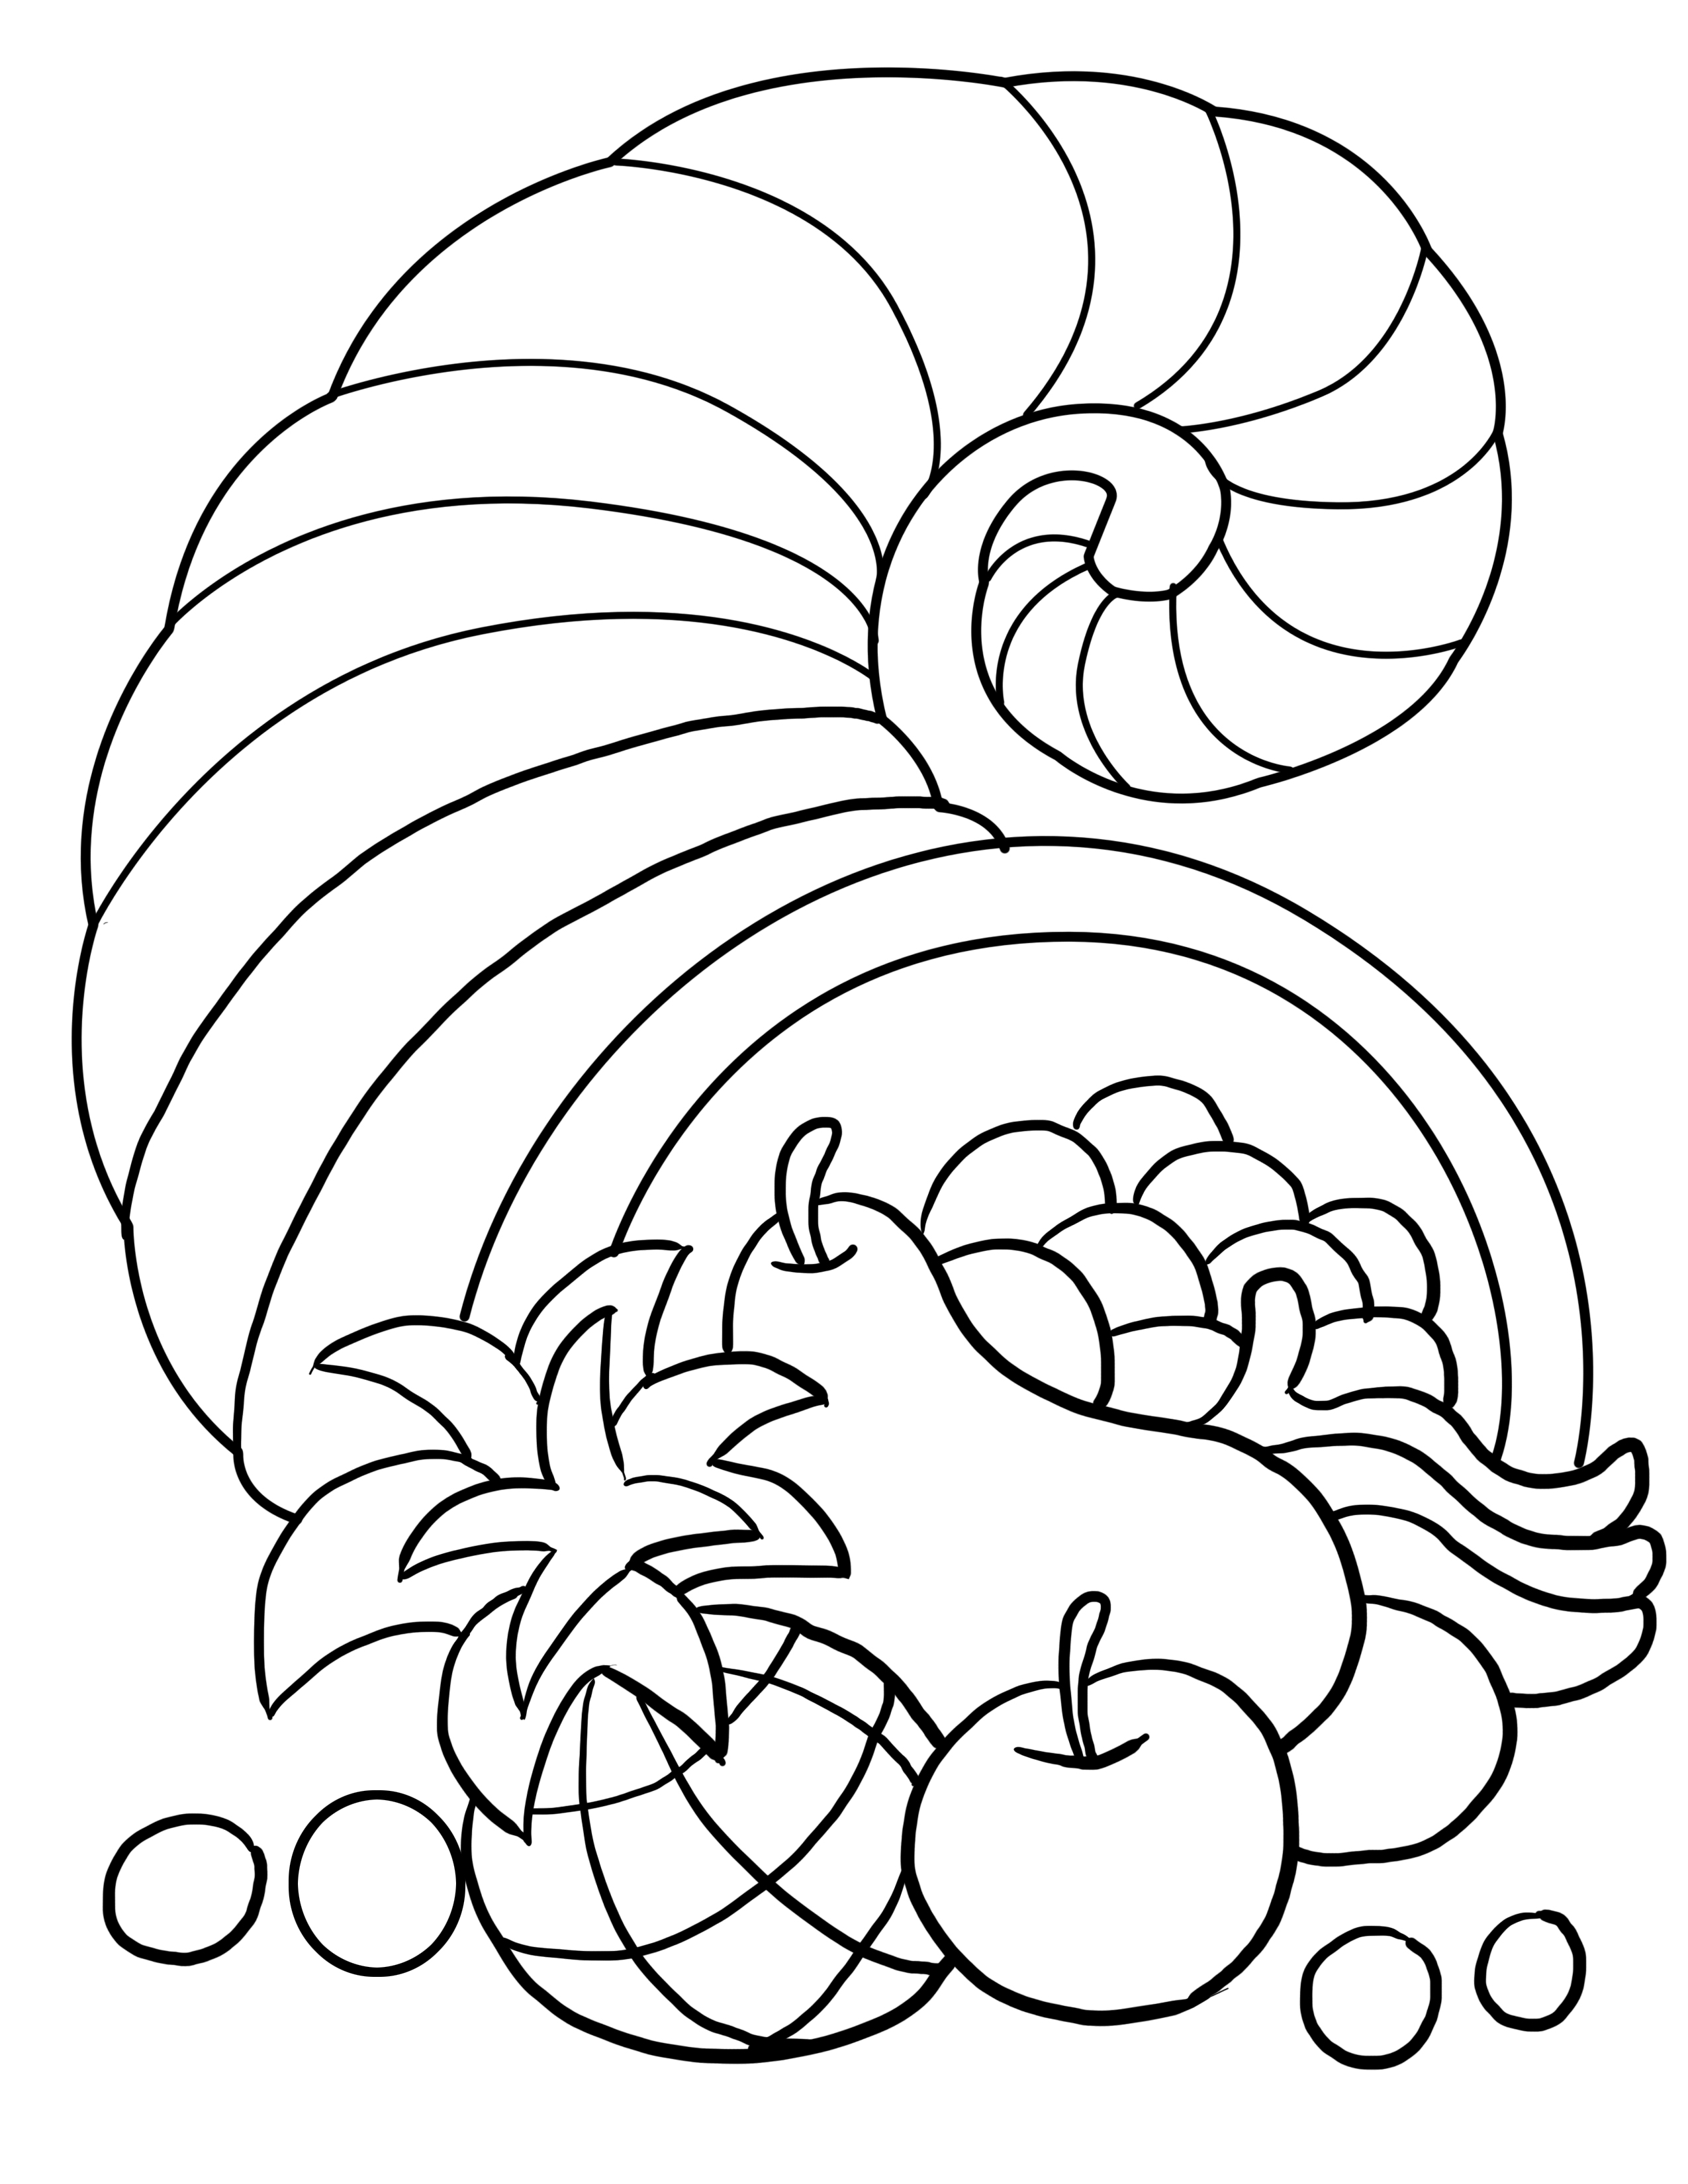 Thanksgiving Coloring Pages (1)